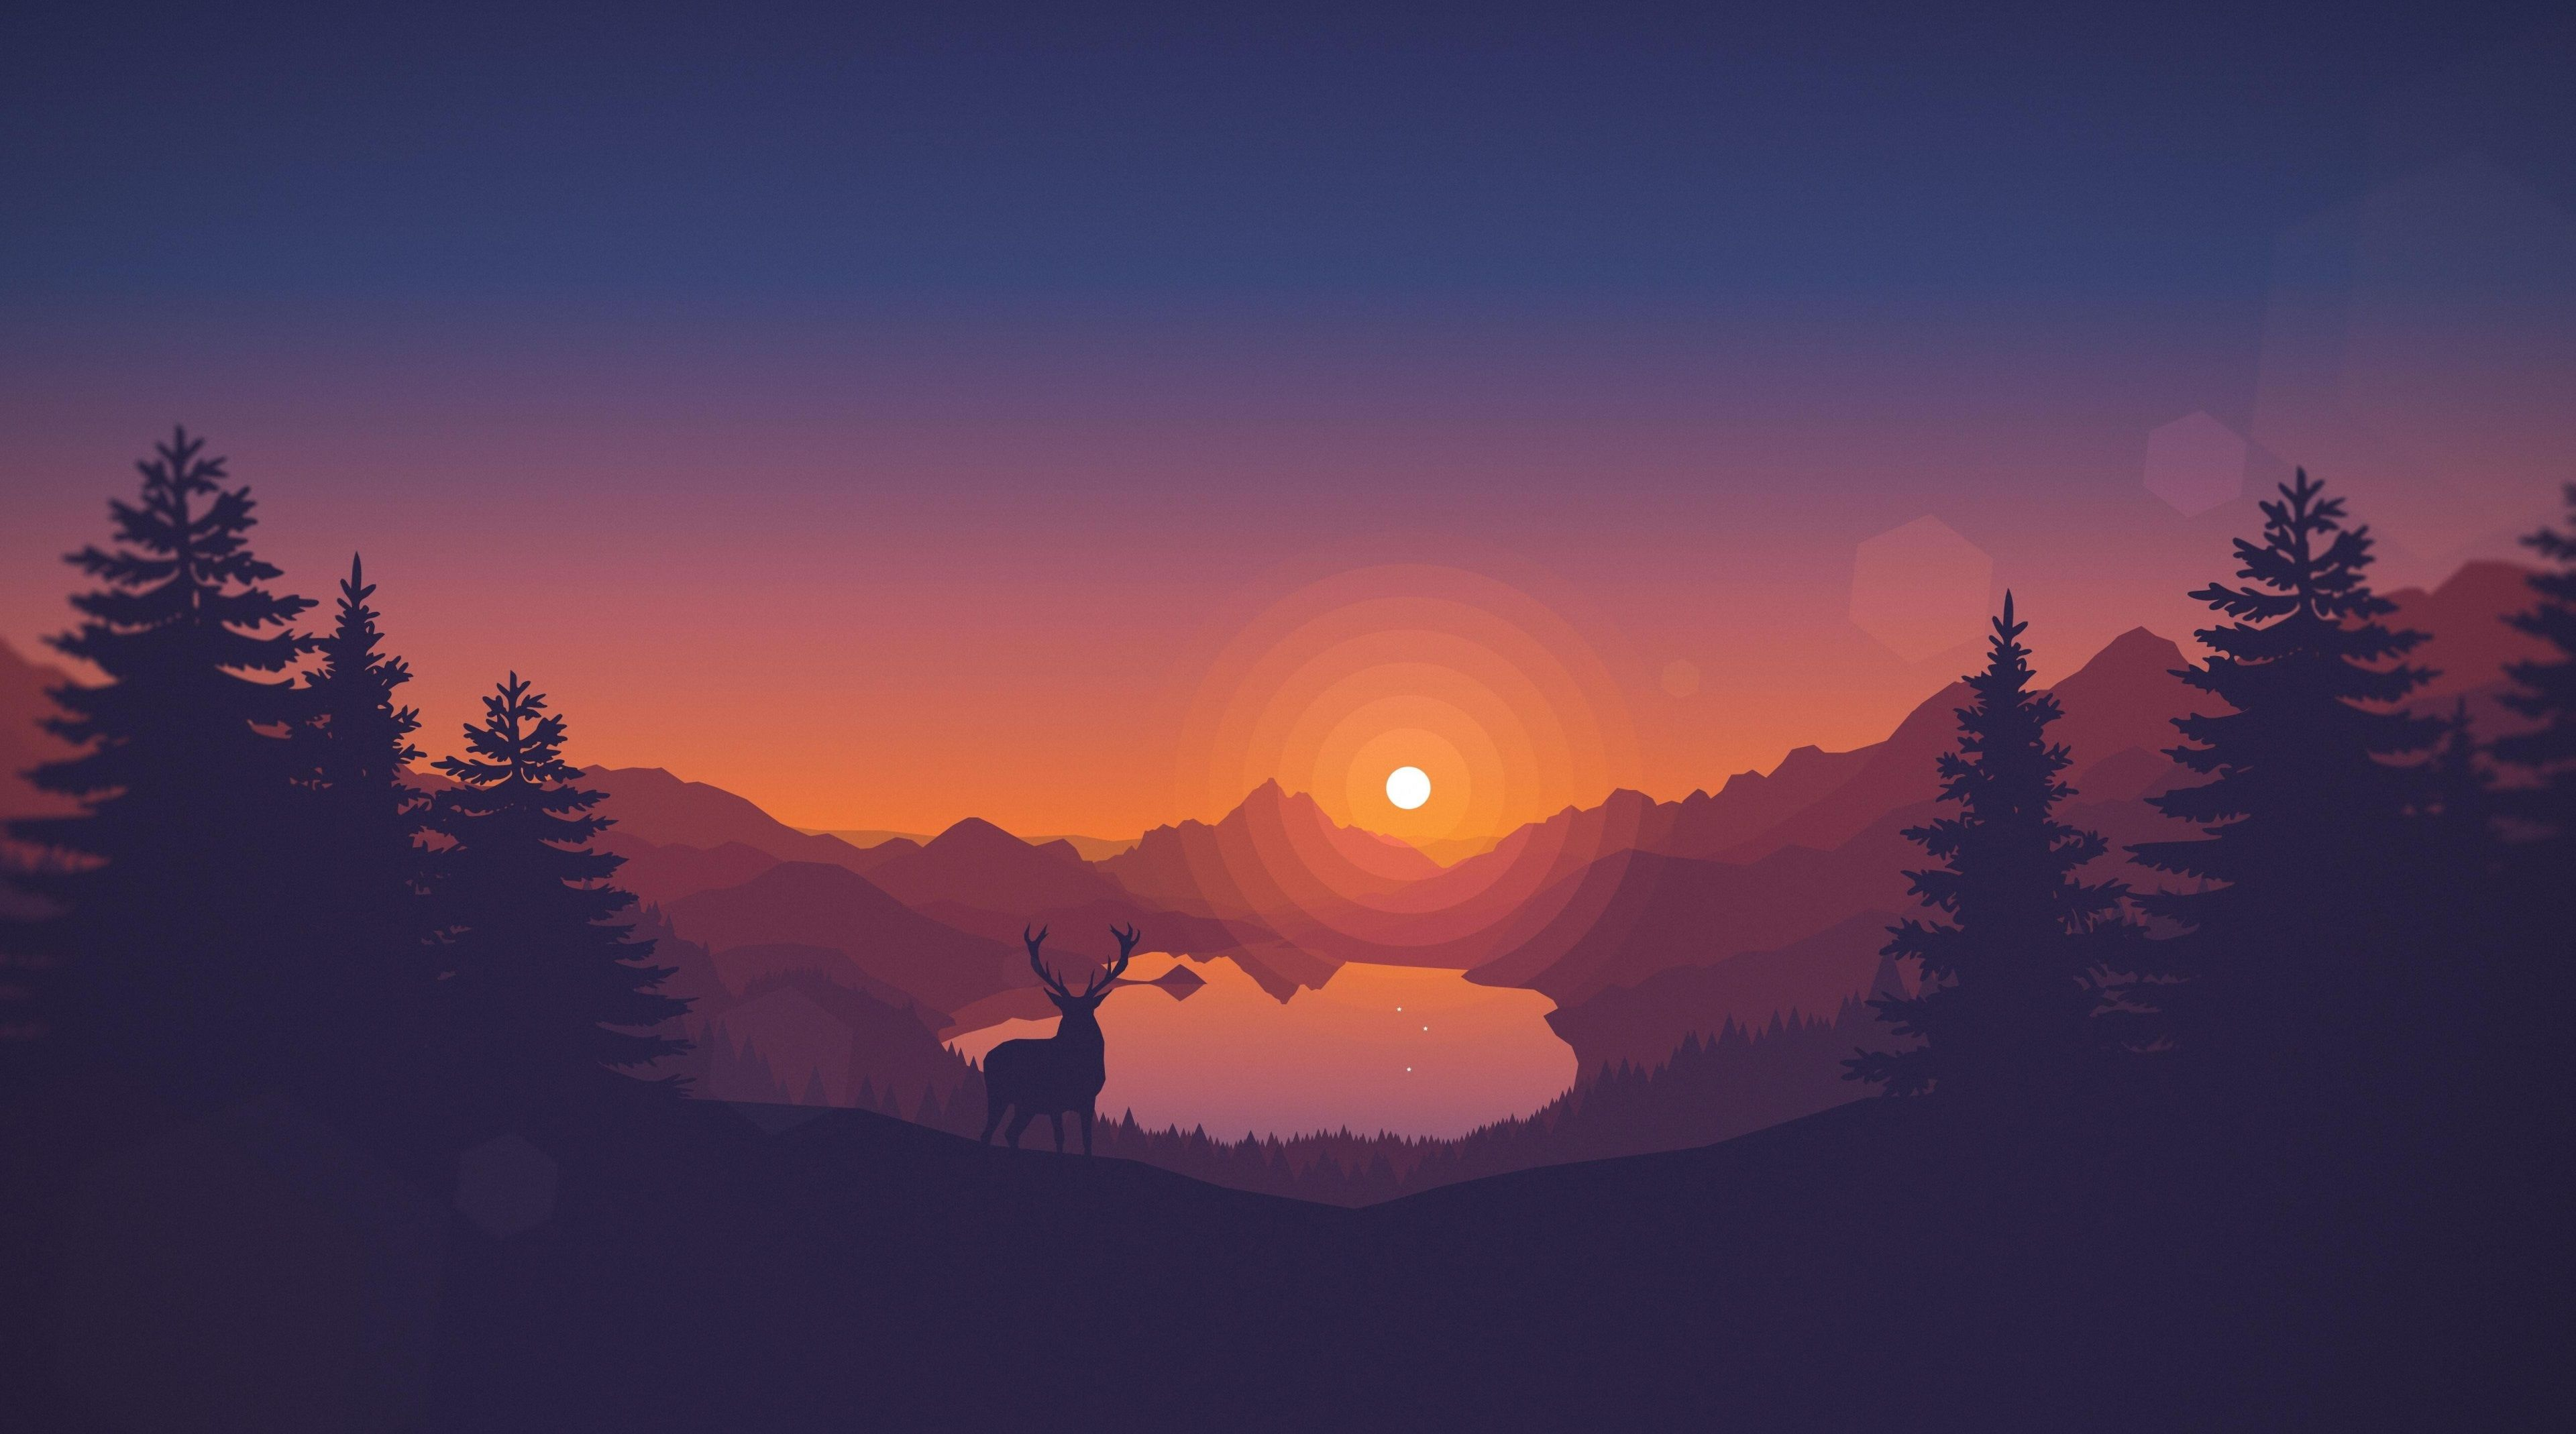 3840x2138 Firewatch 4k Desktop Wallpaper Cool Photography In 2019